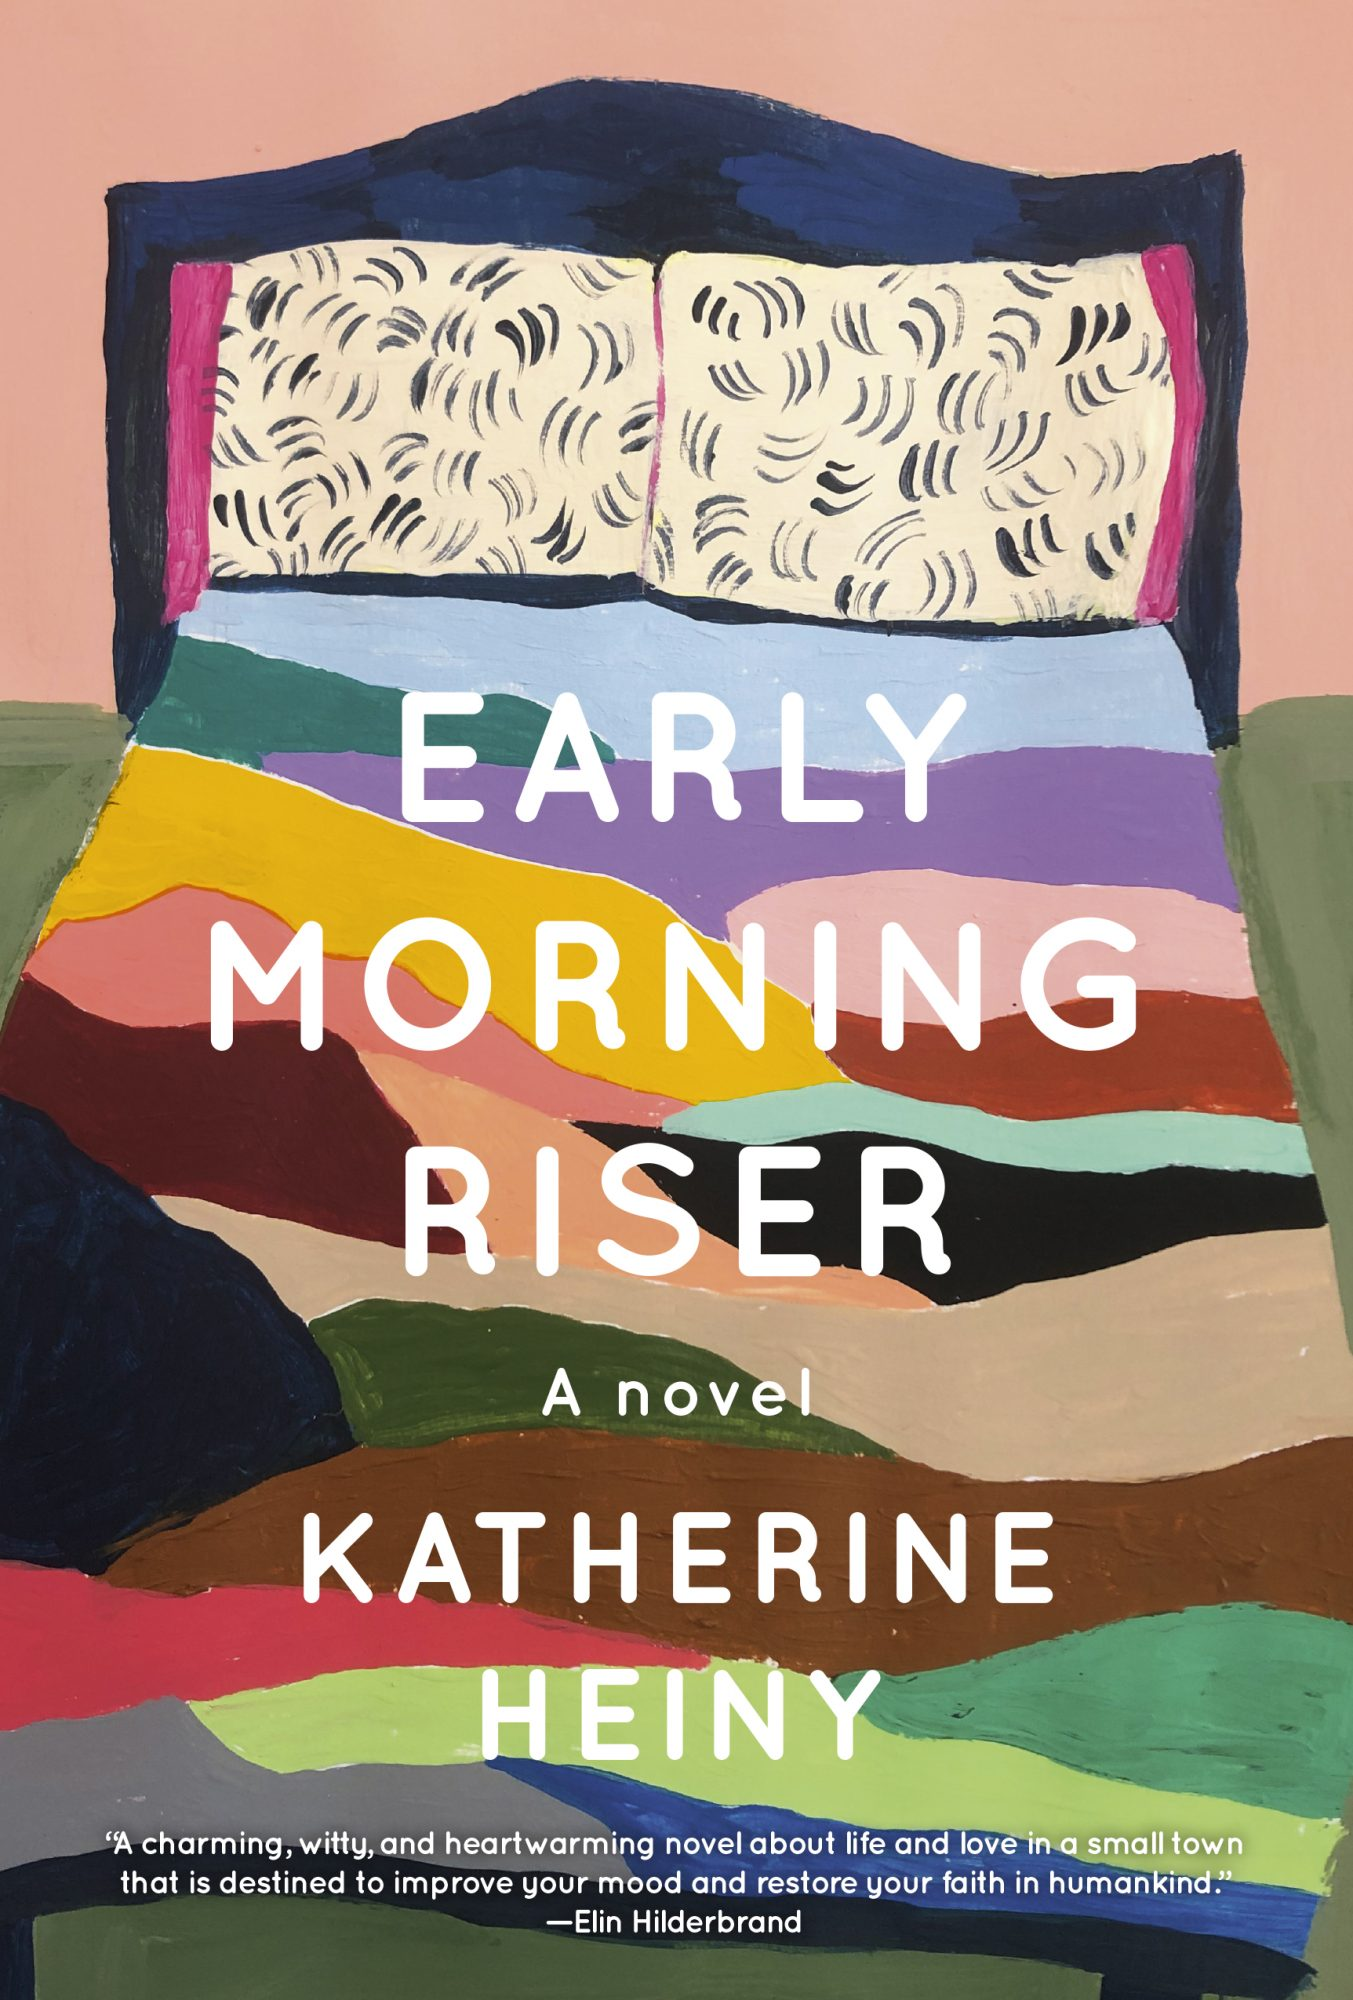 Early Morning Riser Katherine Heiny